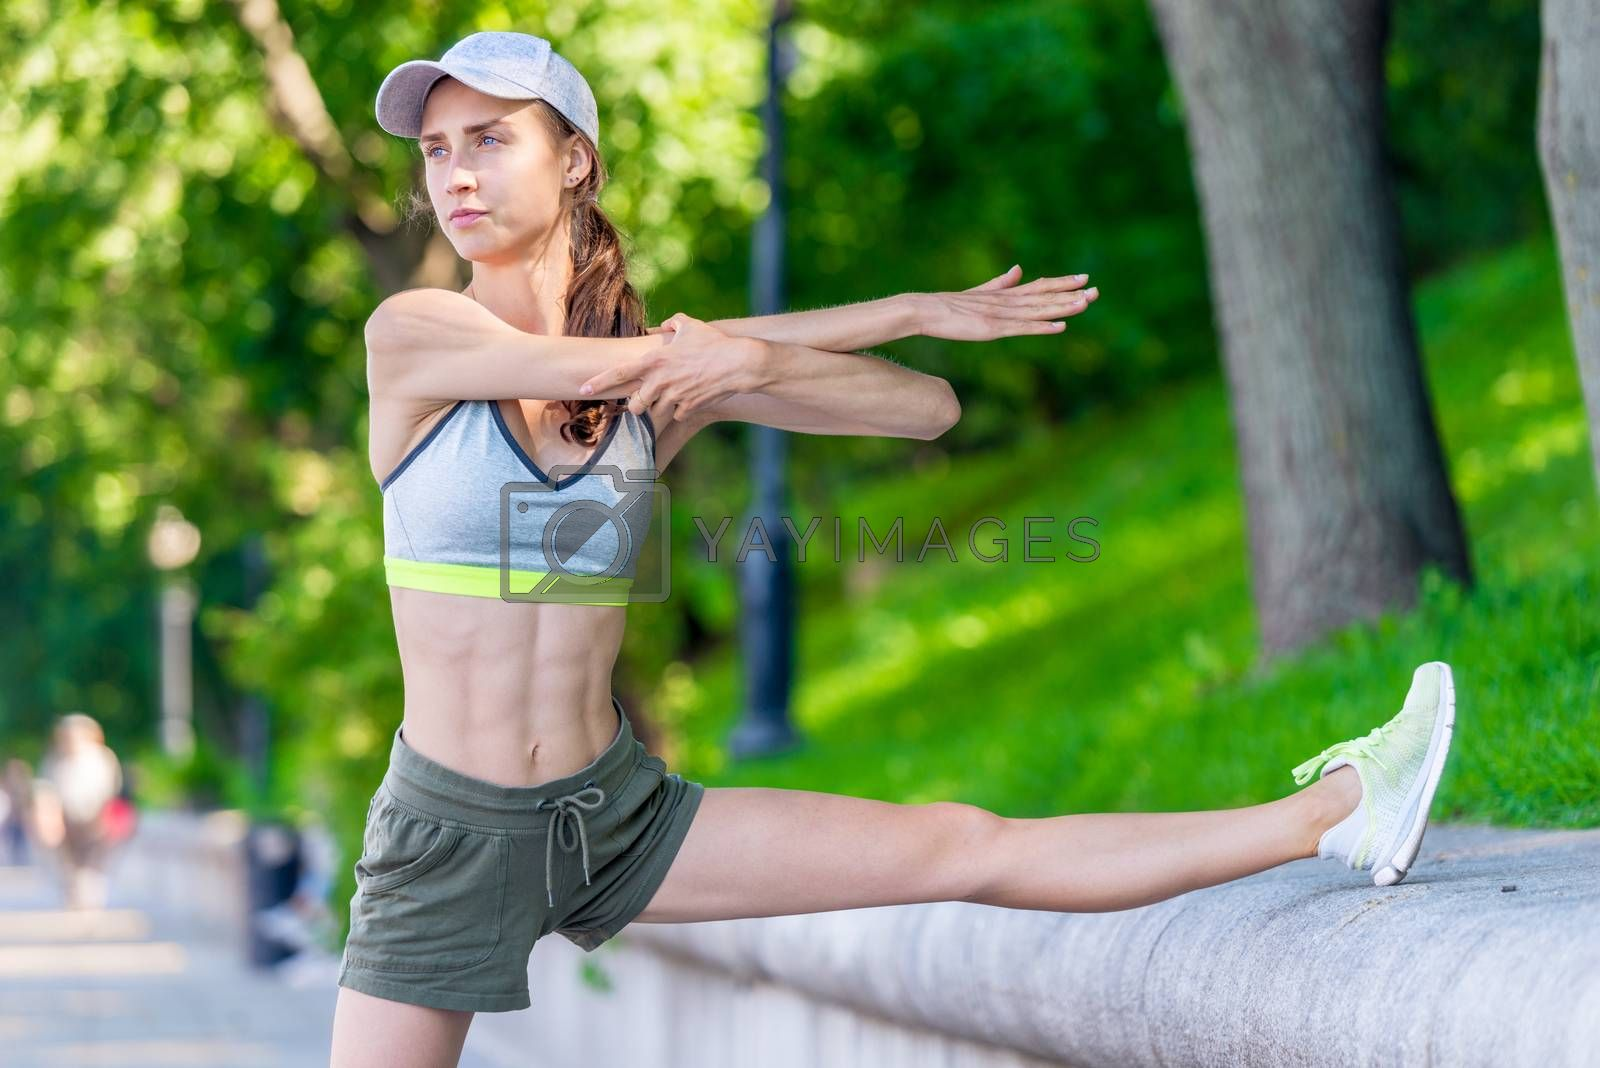 woman athlete warming up before jogging in a city park, portrait by Labunskiy K.